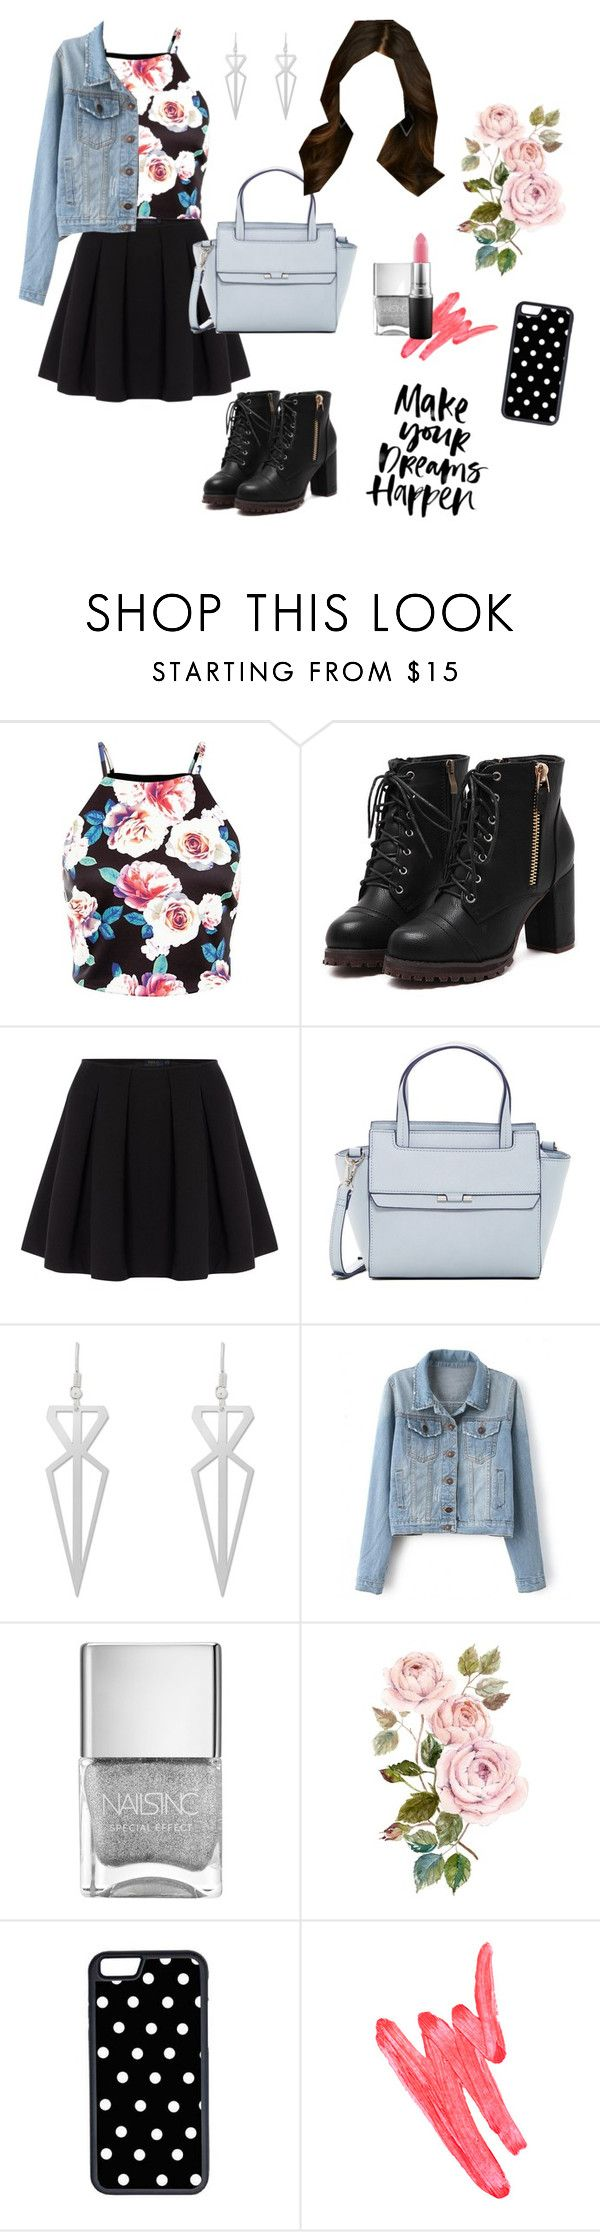 """Aria Montgomery Inspired Outfit - PLL"" by pll-blog on Polyvore featuring Polo Ralph Lauren, Danielle Nicole, CellPowerCases, Ilia, women's clothing, women's fashion, women, female, woman and misses"